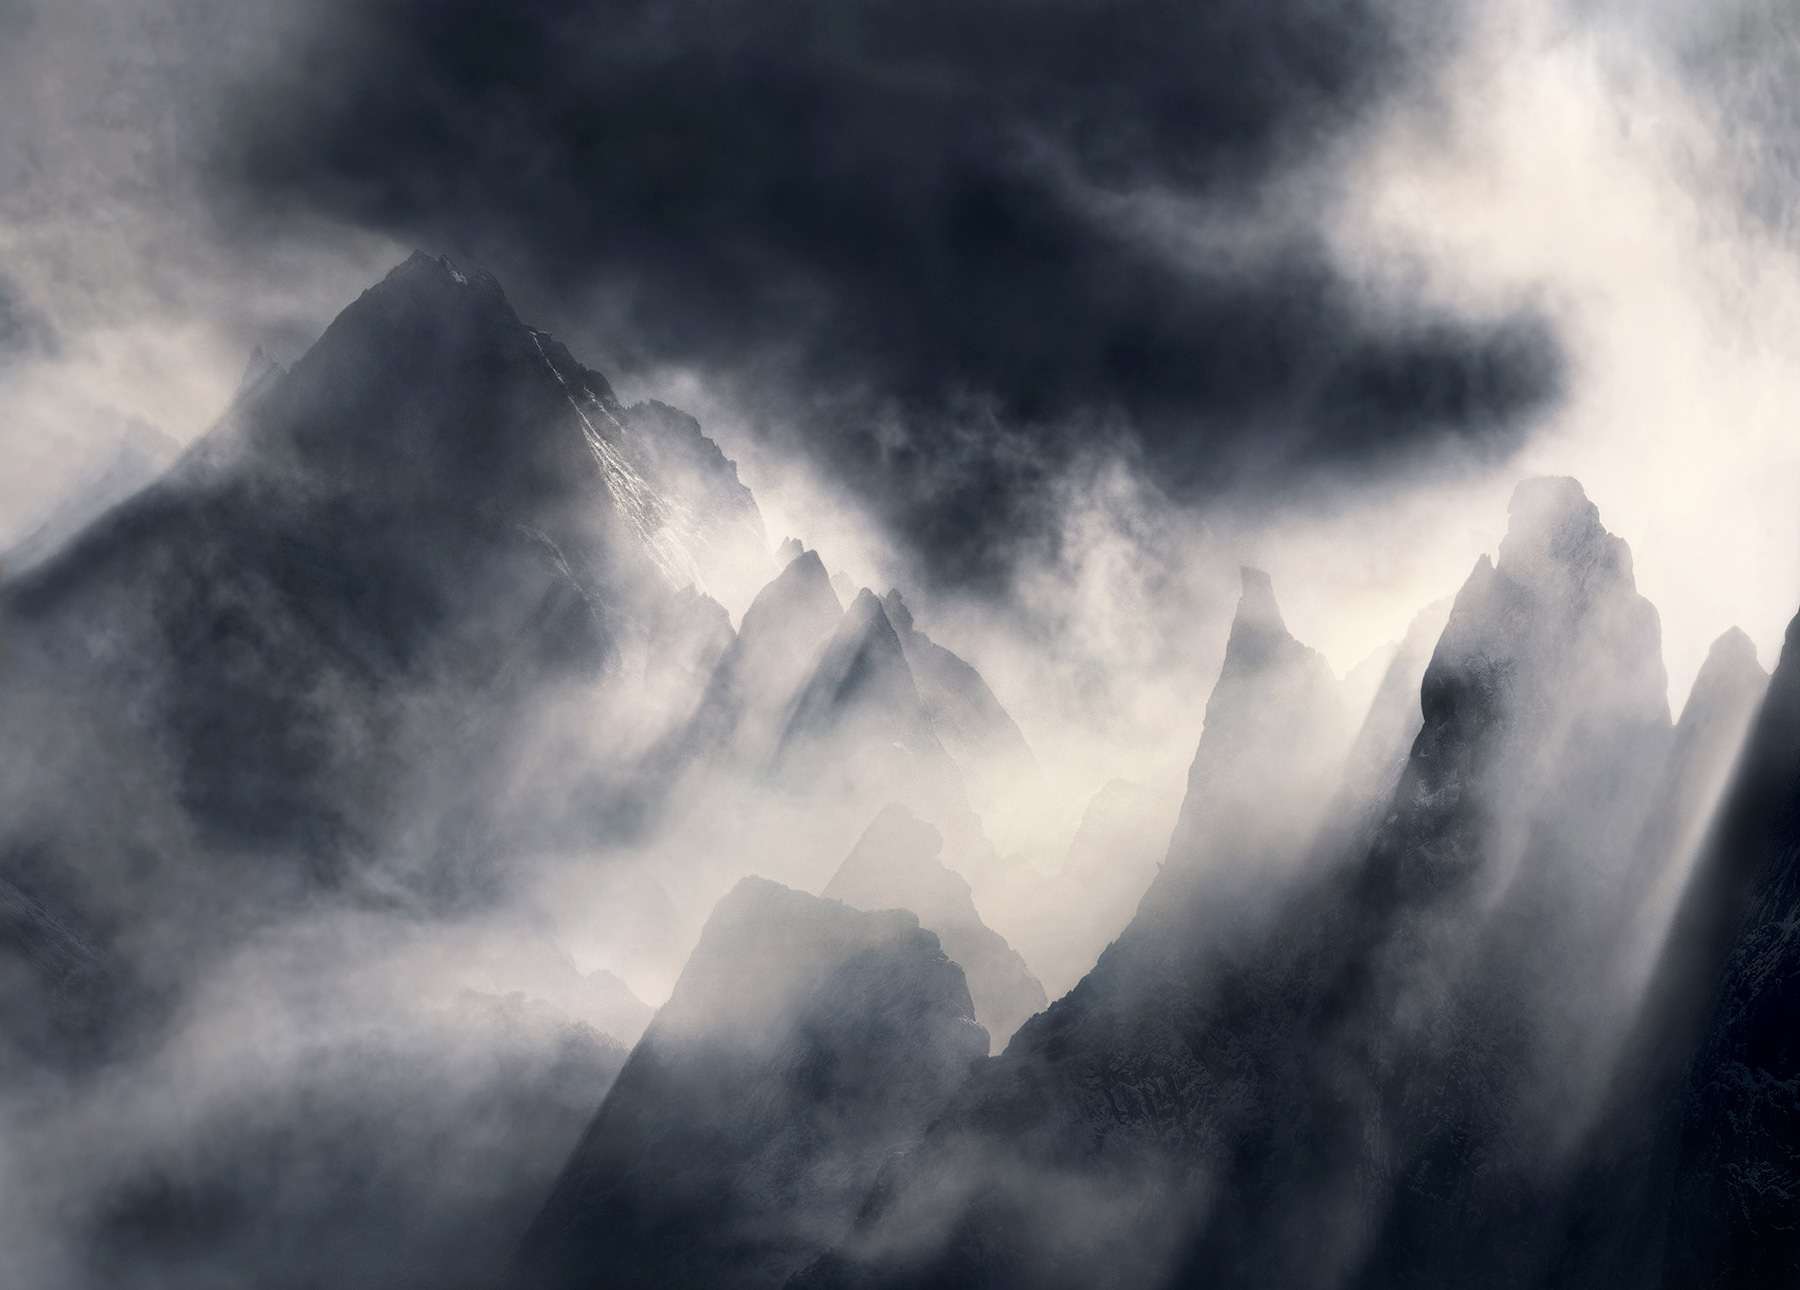 yukon, ogilvie, fog, misty, peaks, jagged, photo